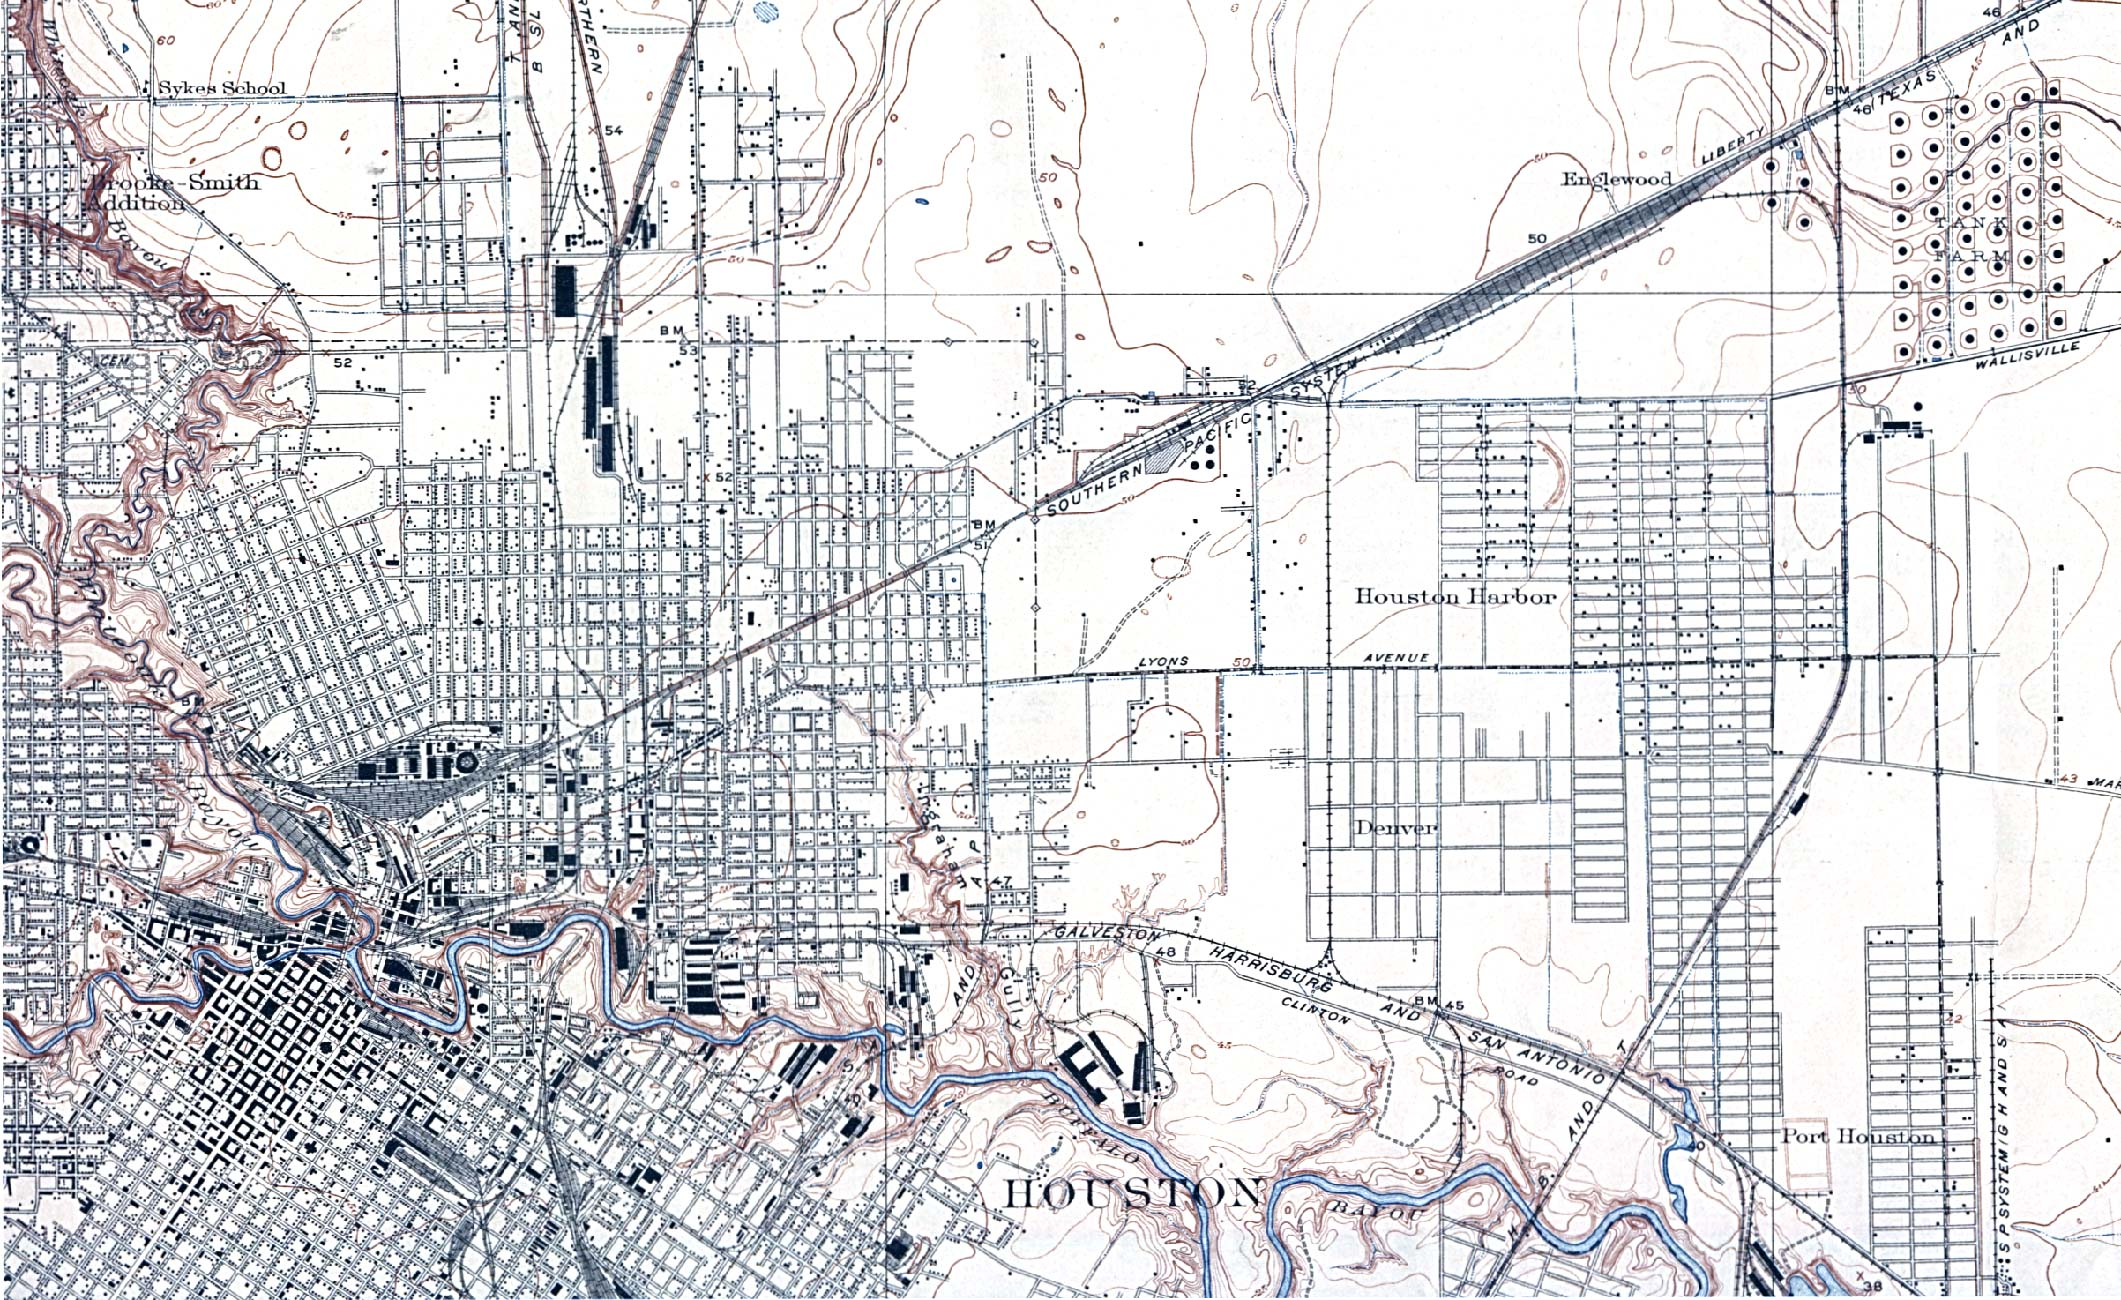 Historical Maps of U.S Cities, Houston, Texas (North East) 1922 Original Scale 1:31,680. U.S. Geological Survey (741K)